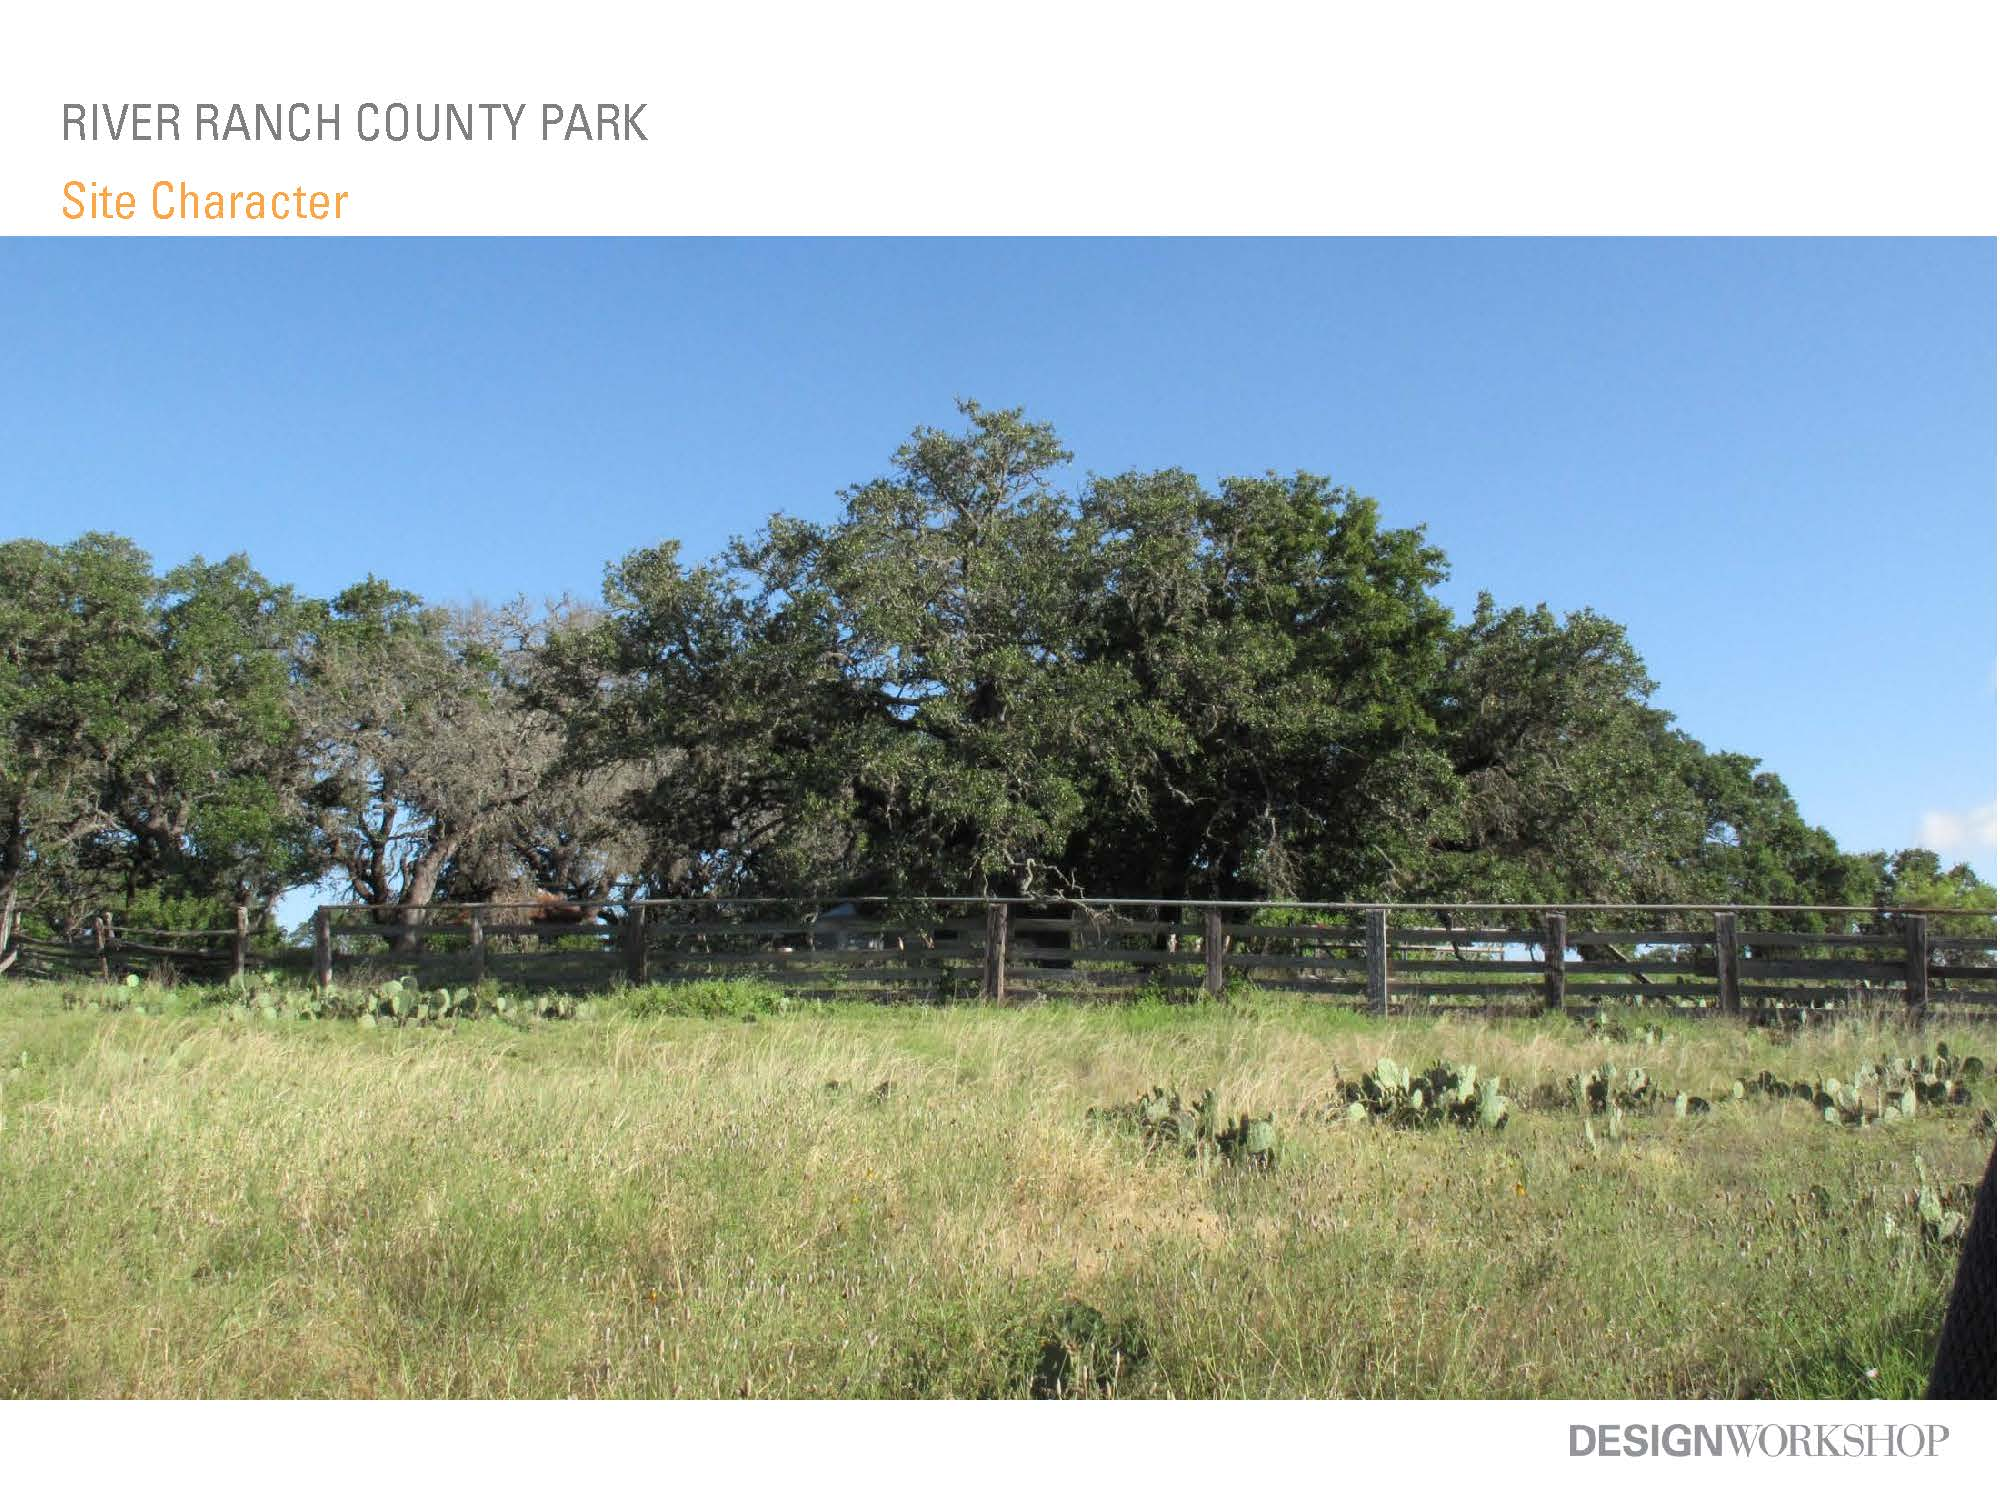 River_Ranch_County_Park_Ph1_Page_16.jpg